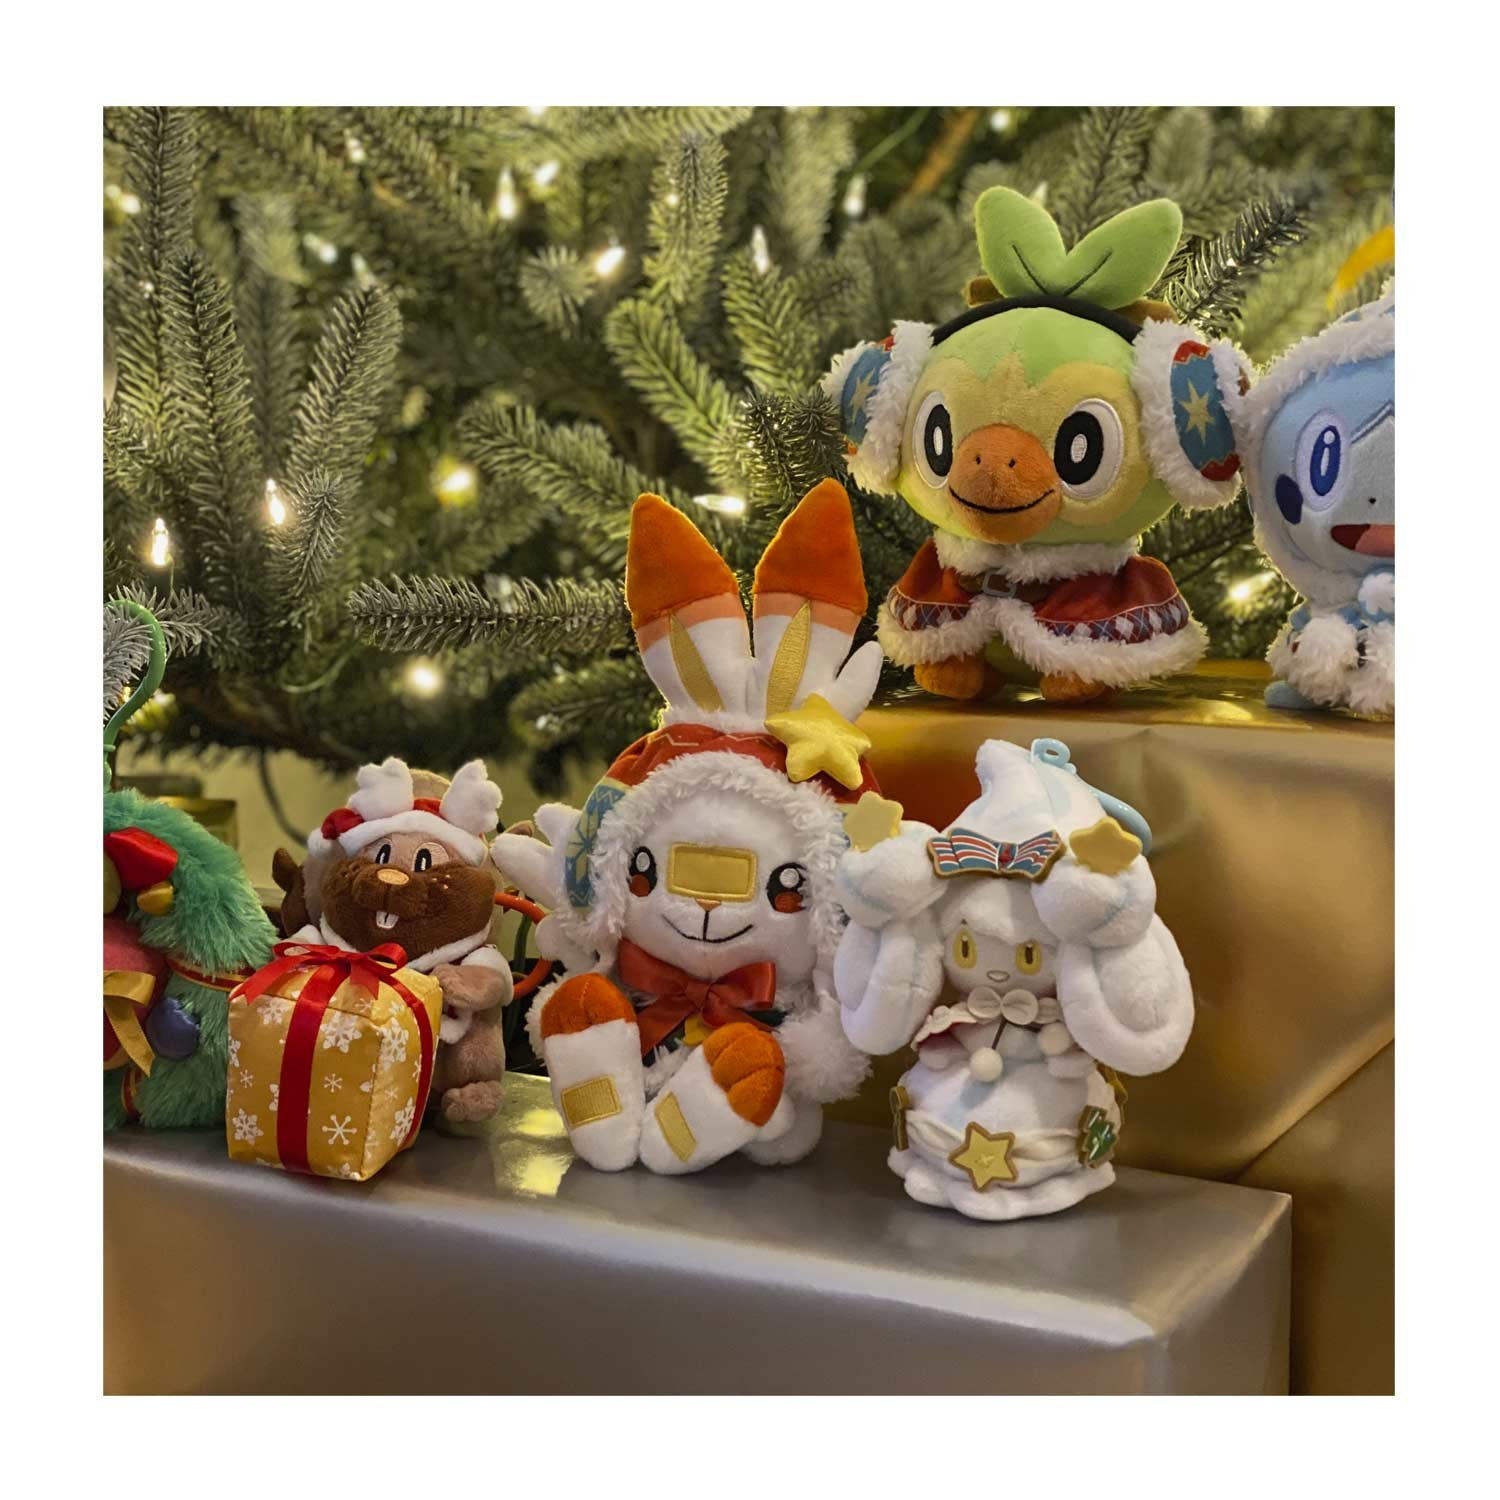 Pokemon Center Christmas 2021 New Products As Part Of The Pokemon Center Holiday Collection 2020 Available Now With More Coming Soon Pokemon Blog